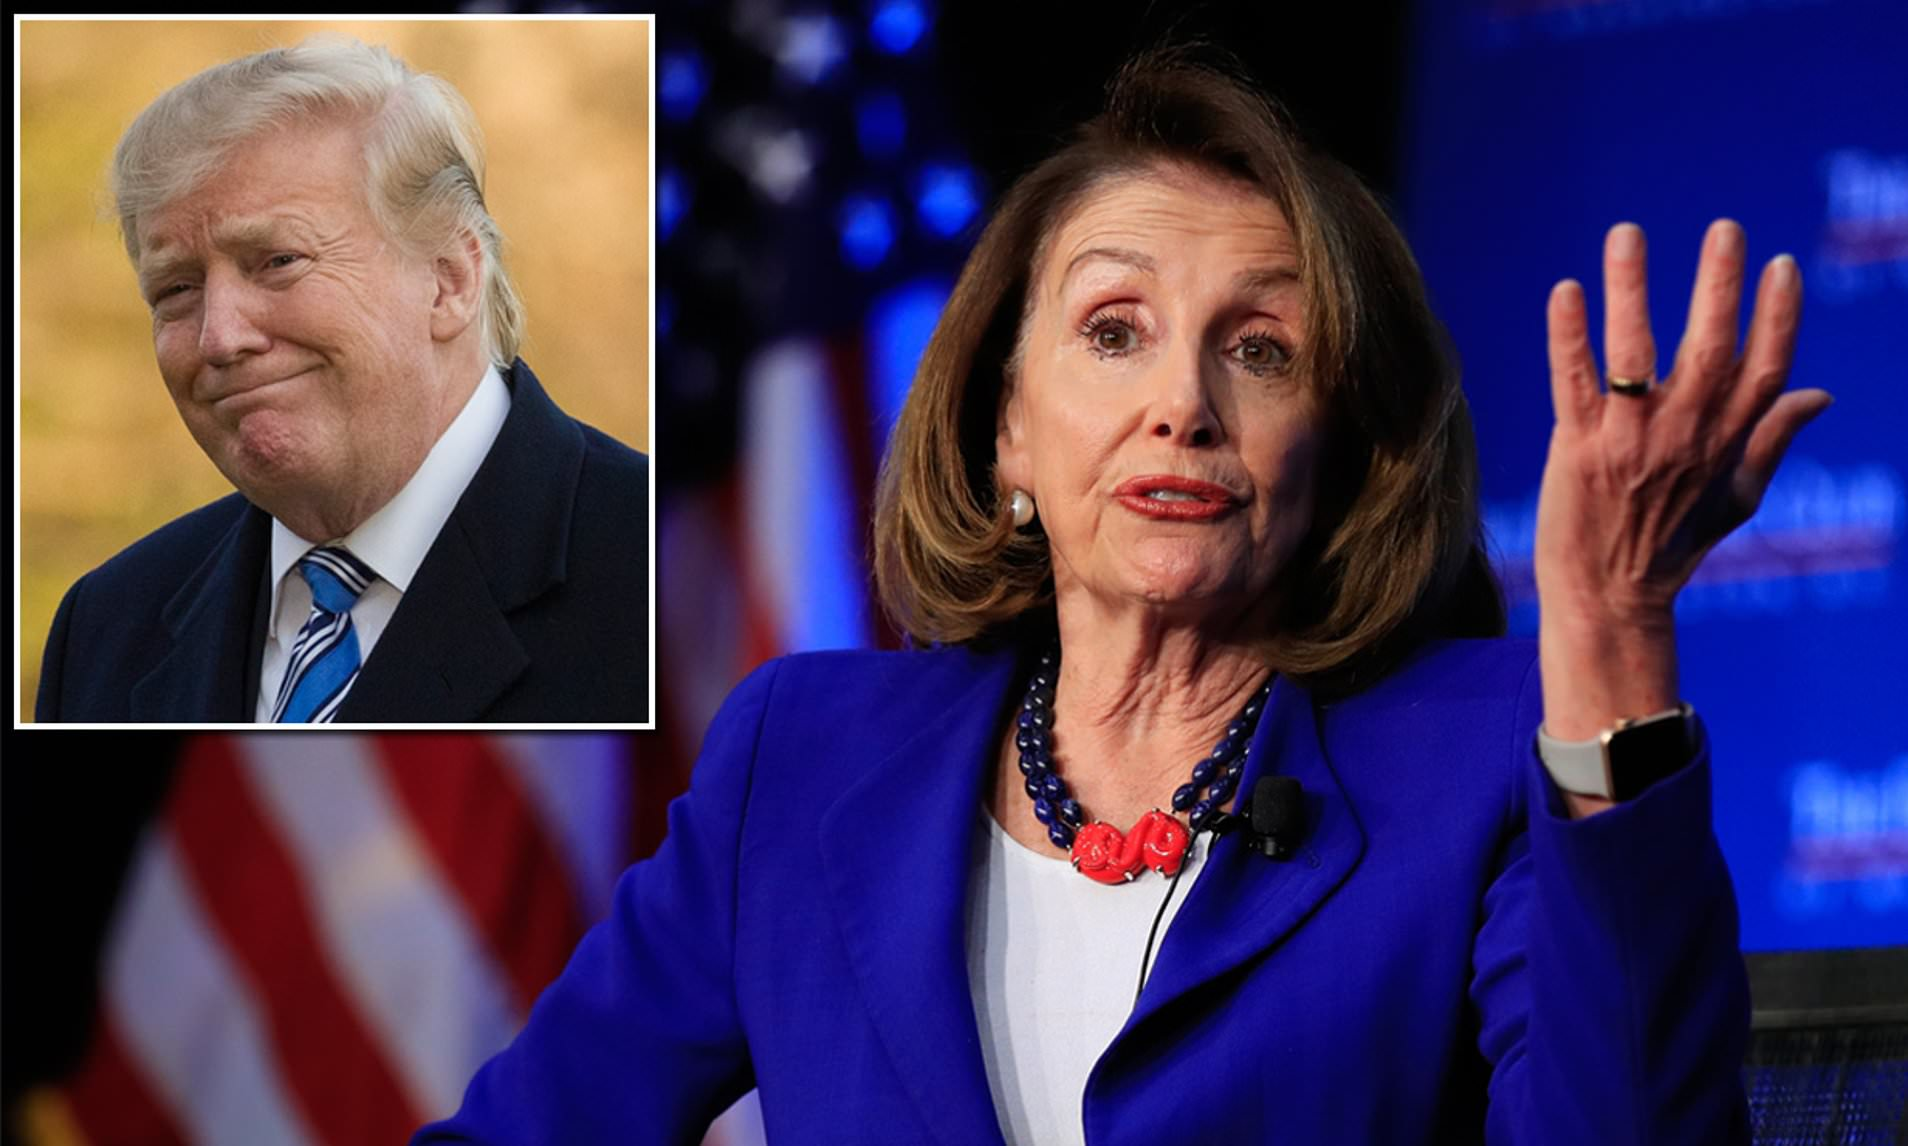 It is Not Worth Impeaching President Trump, Says Speaker Pelosi But Has the World Heard the Last on That?